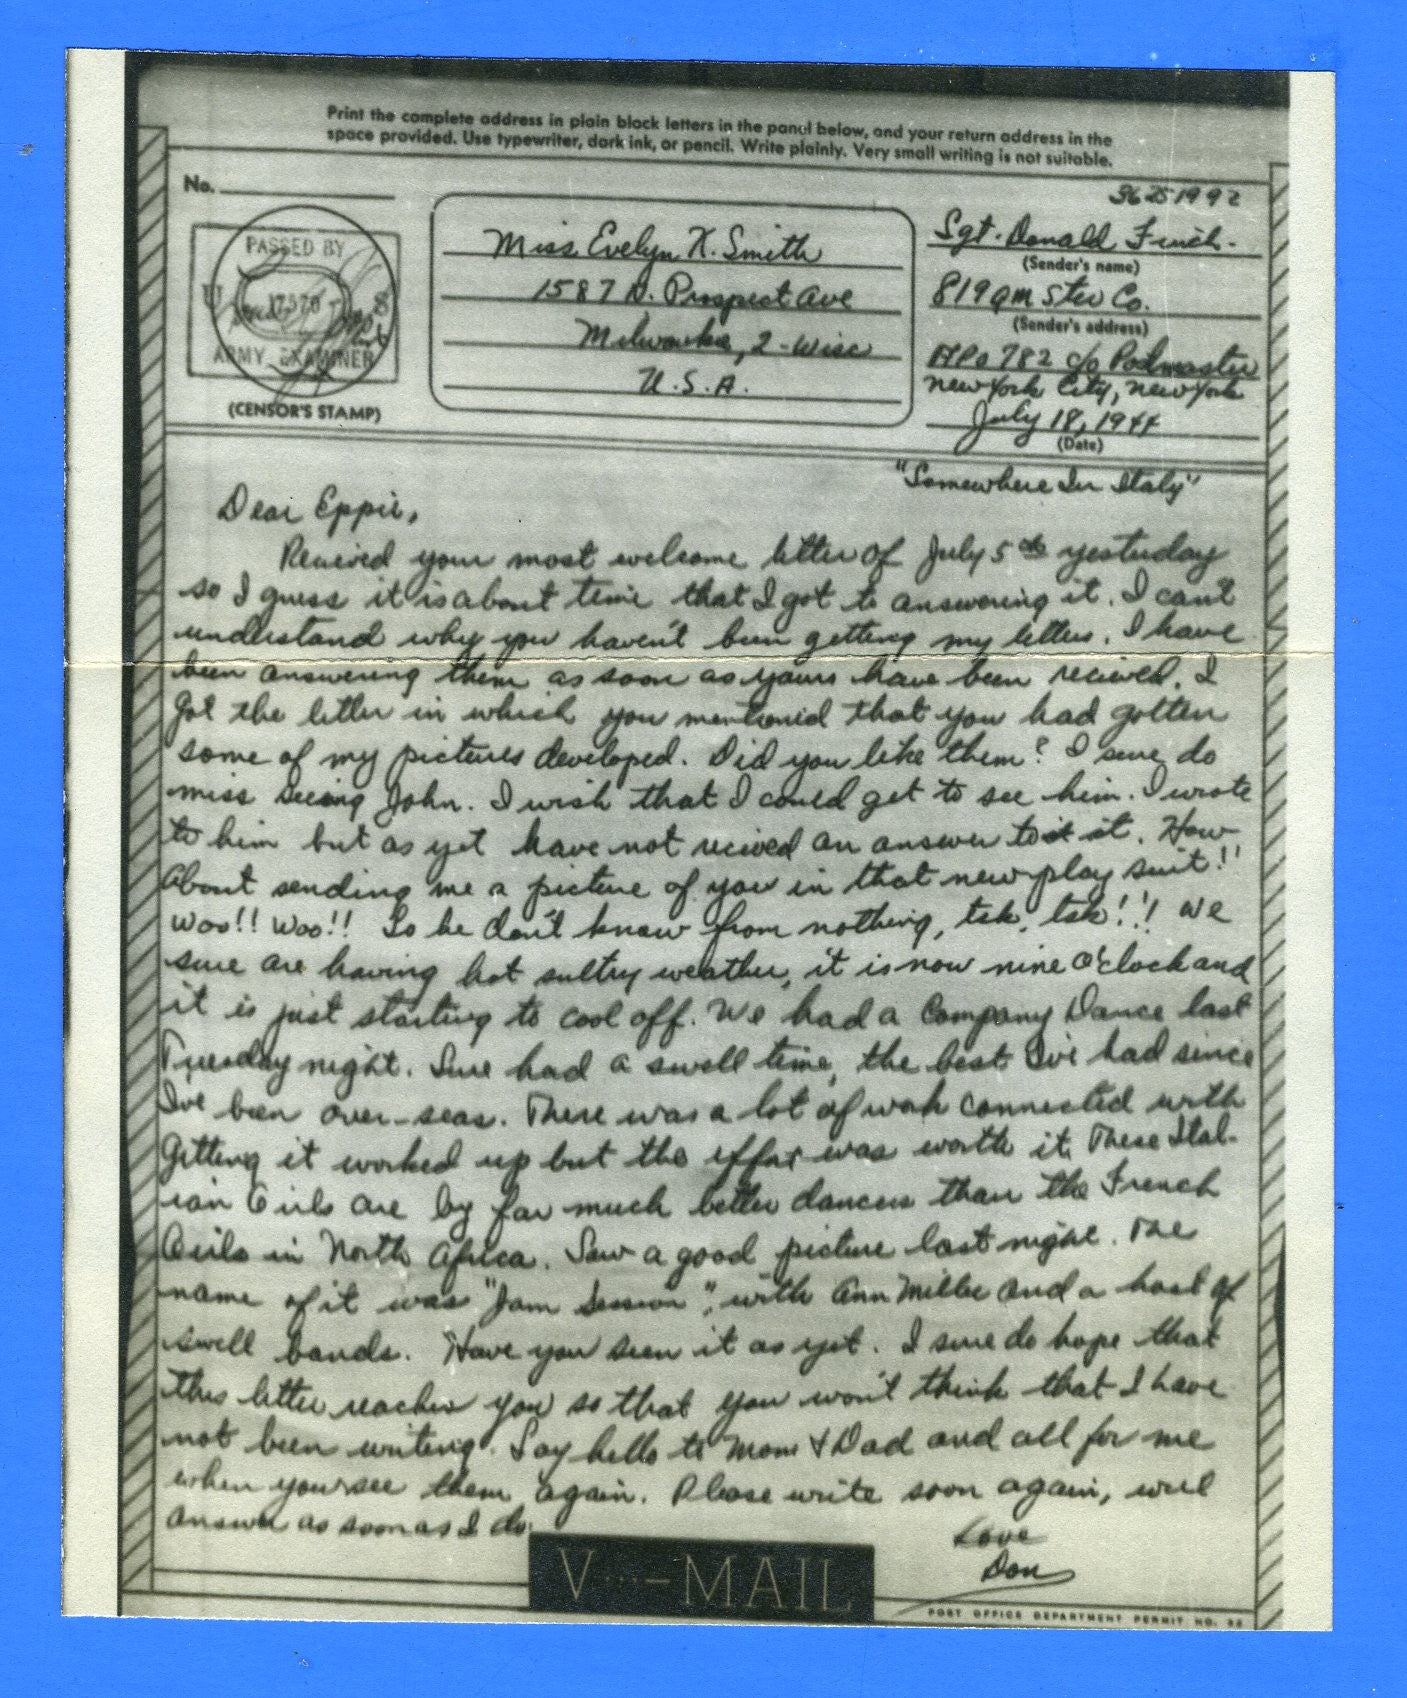 Soldier's V Mail APO 782 Naples, Italy July 18, 1944